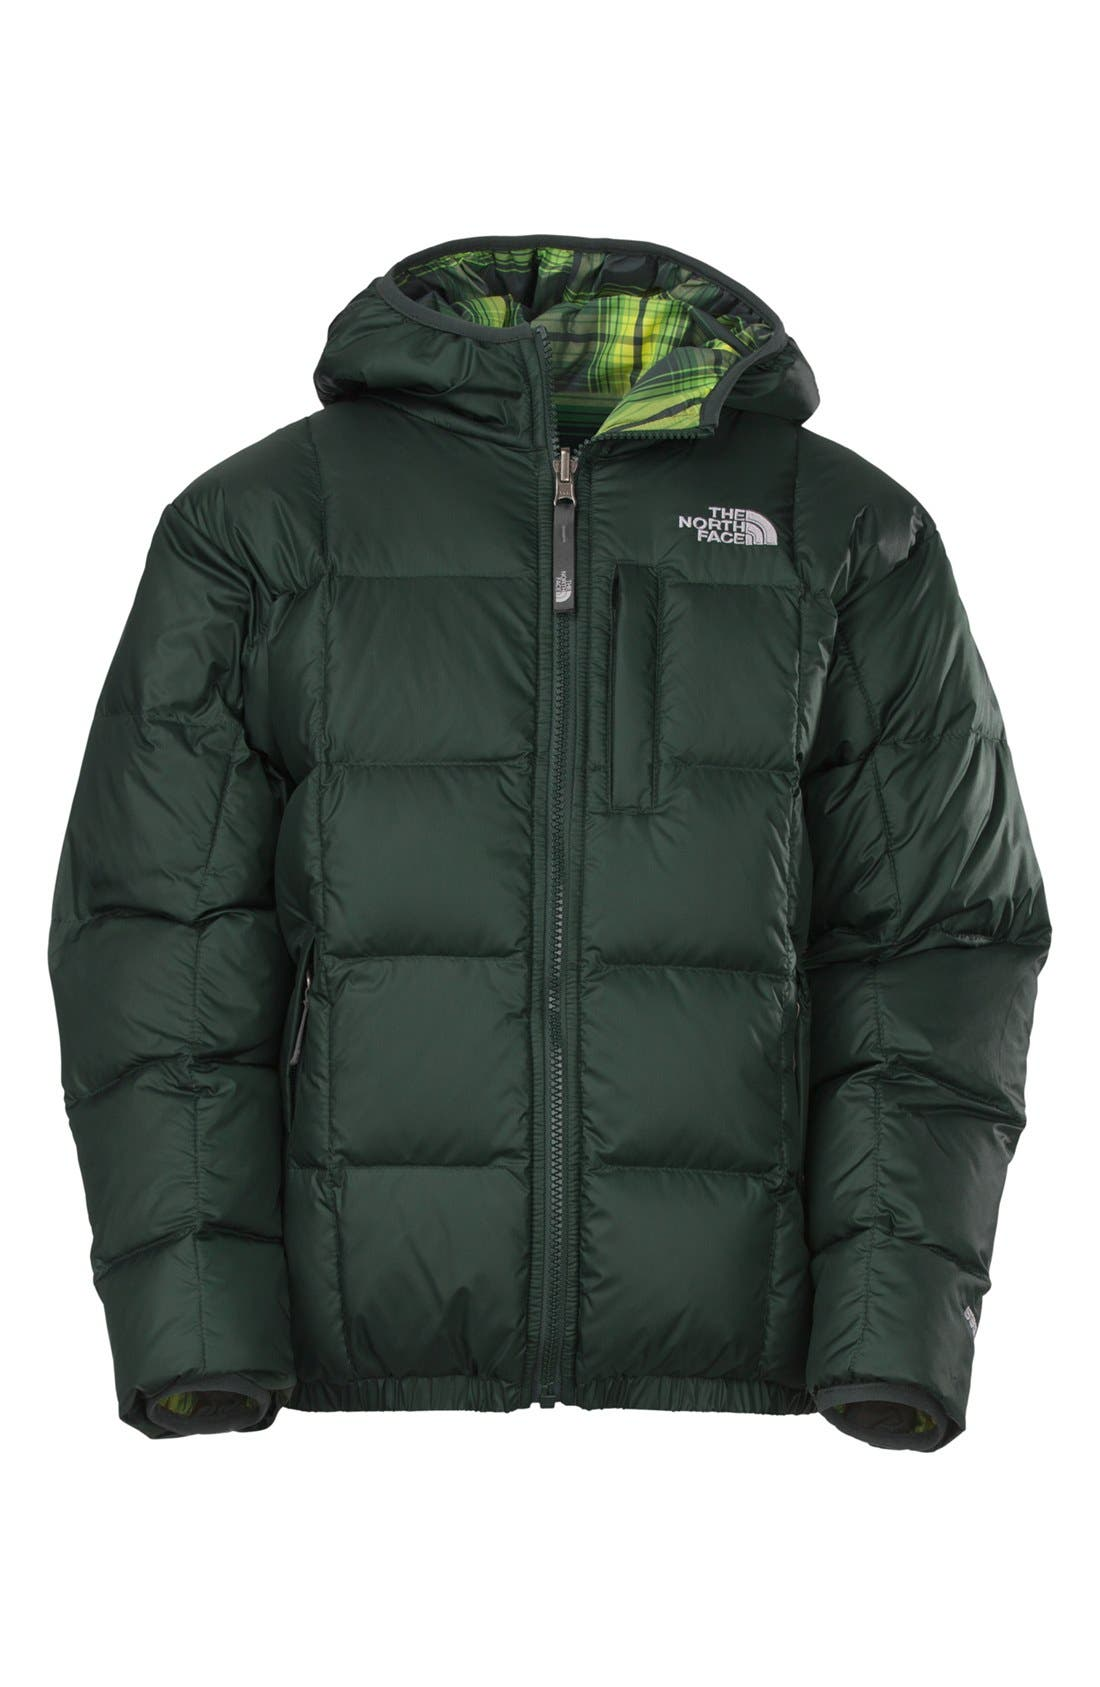 Alternate Image 1 Selected - The North Face 'Moondoggy' Reversible Down Jacket (Little Boys & Big Boys)